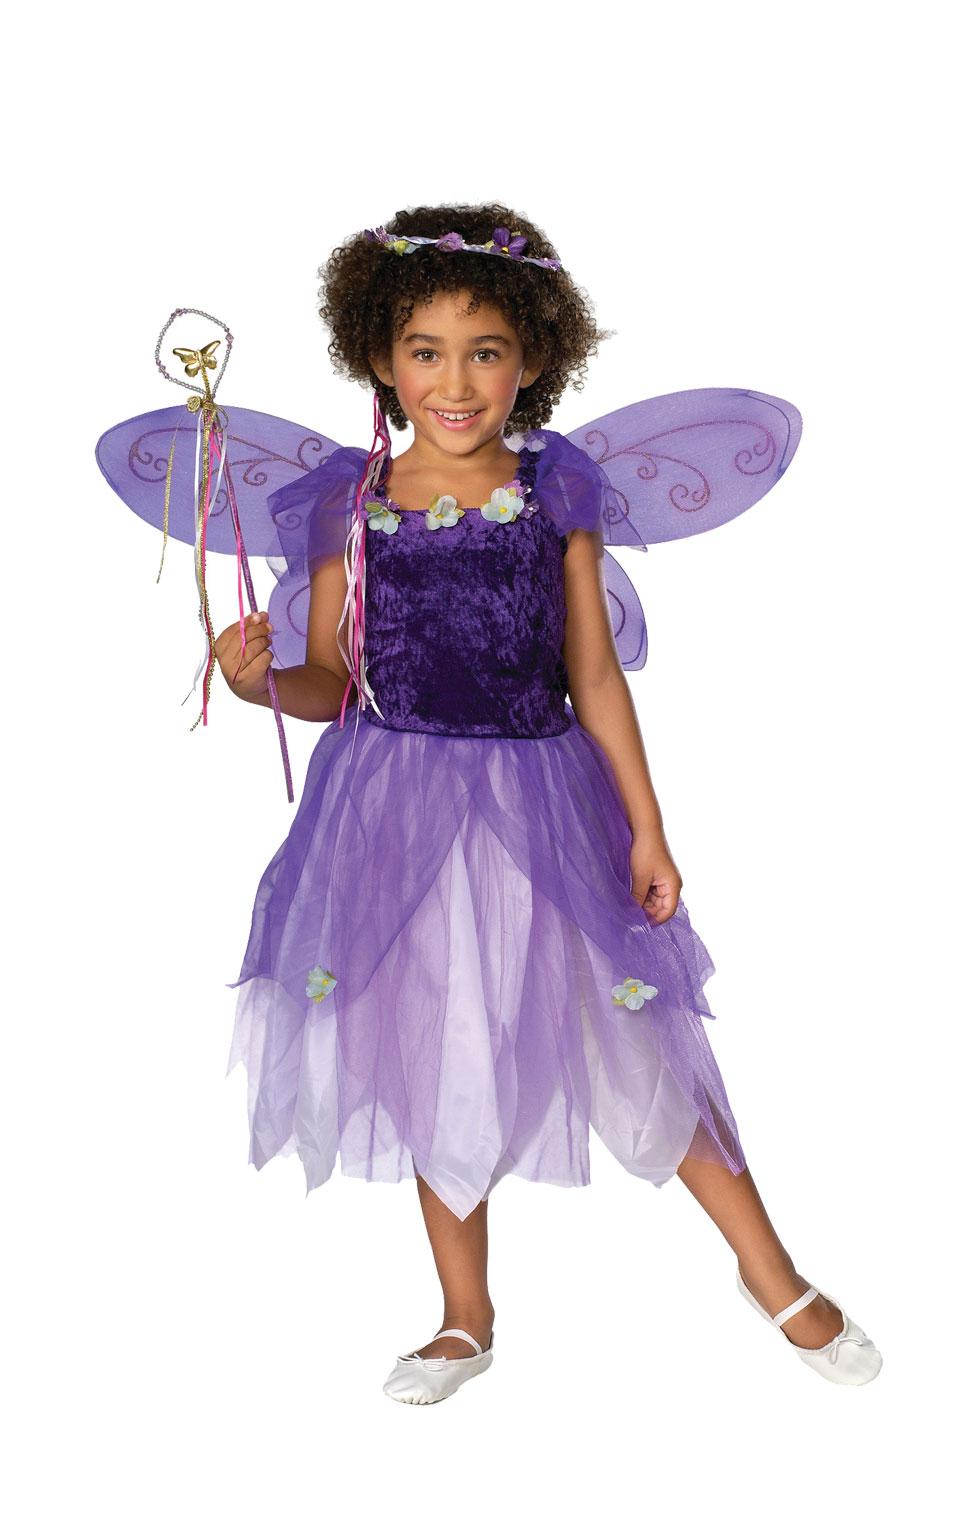 Fairy Princess Girls Fancy Dress Costume Party Outfit///SALE! Kids ...